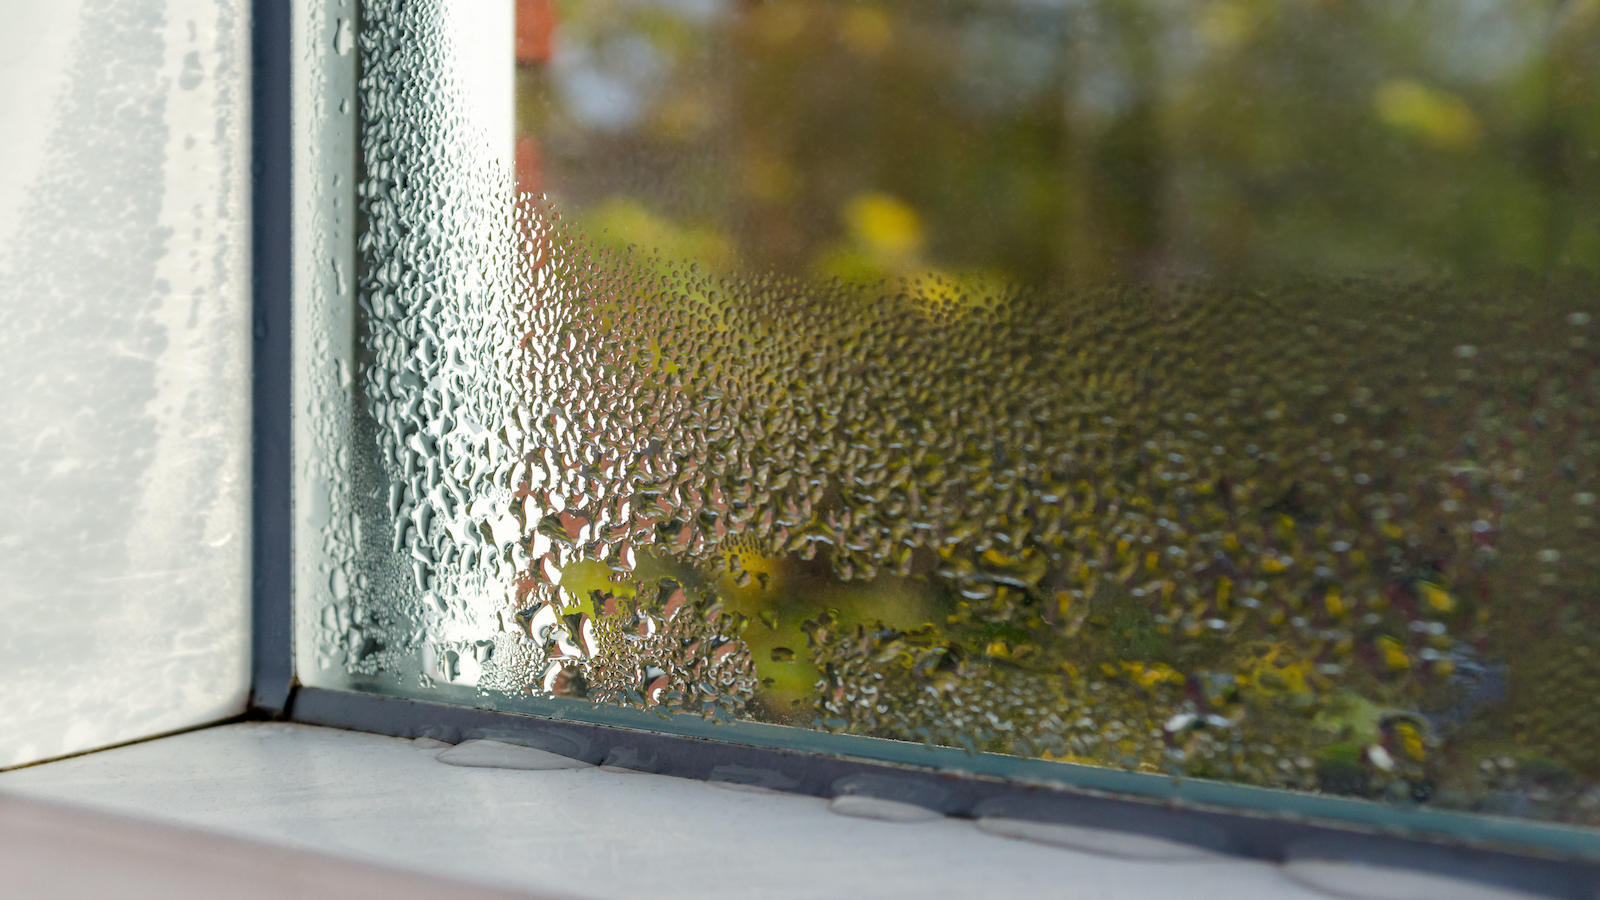 Window with water drops from humidity